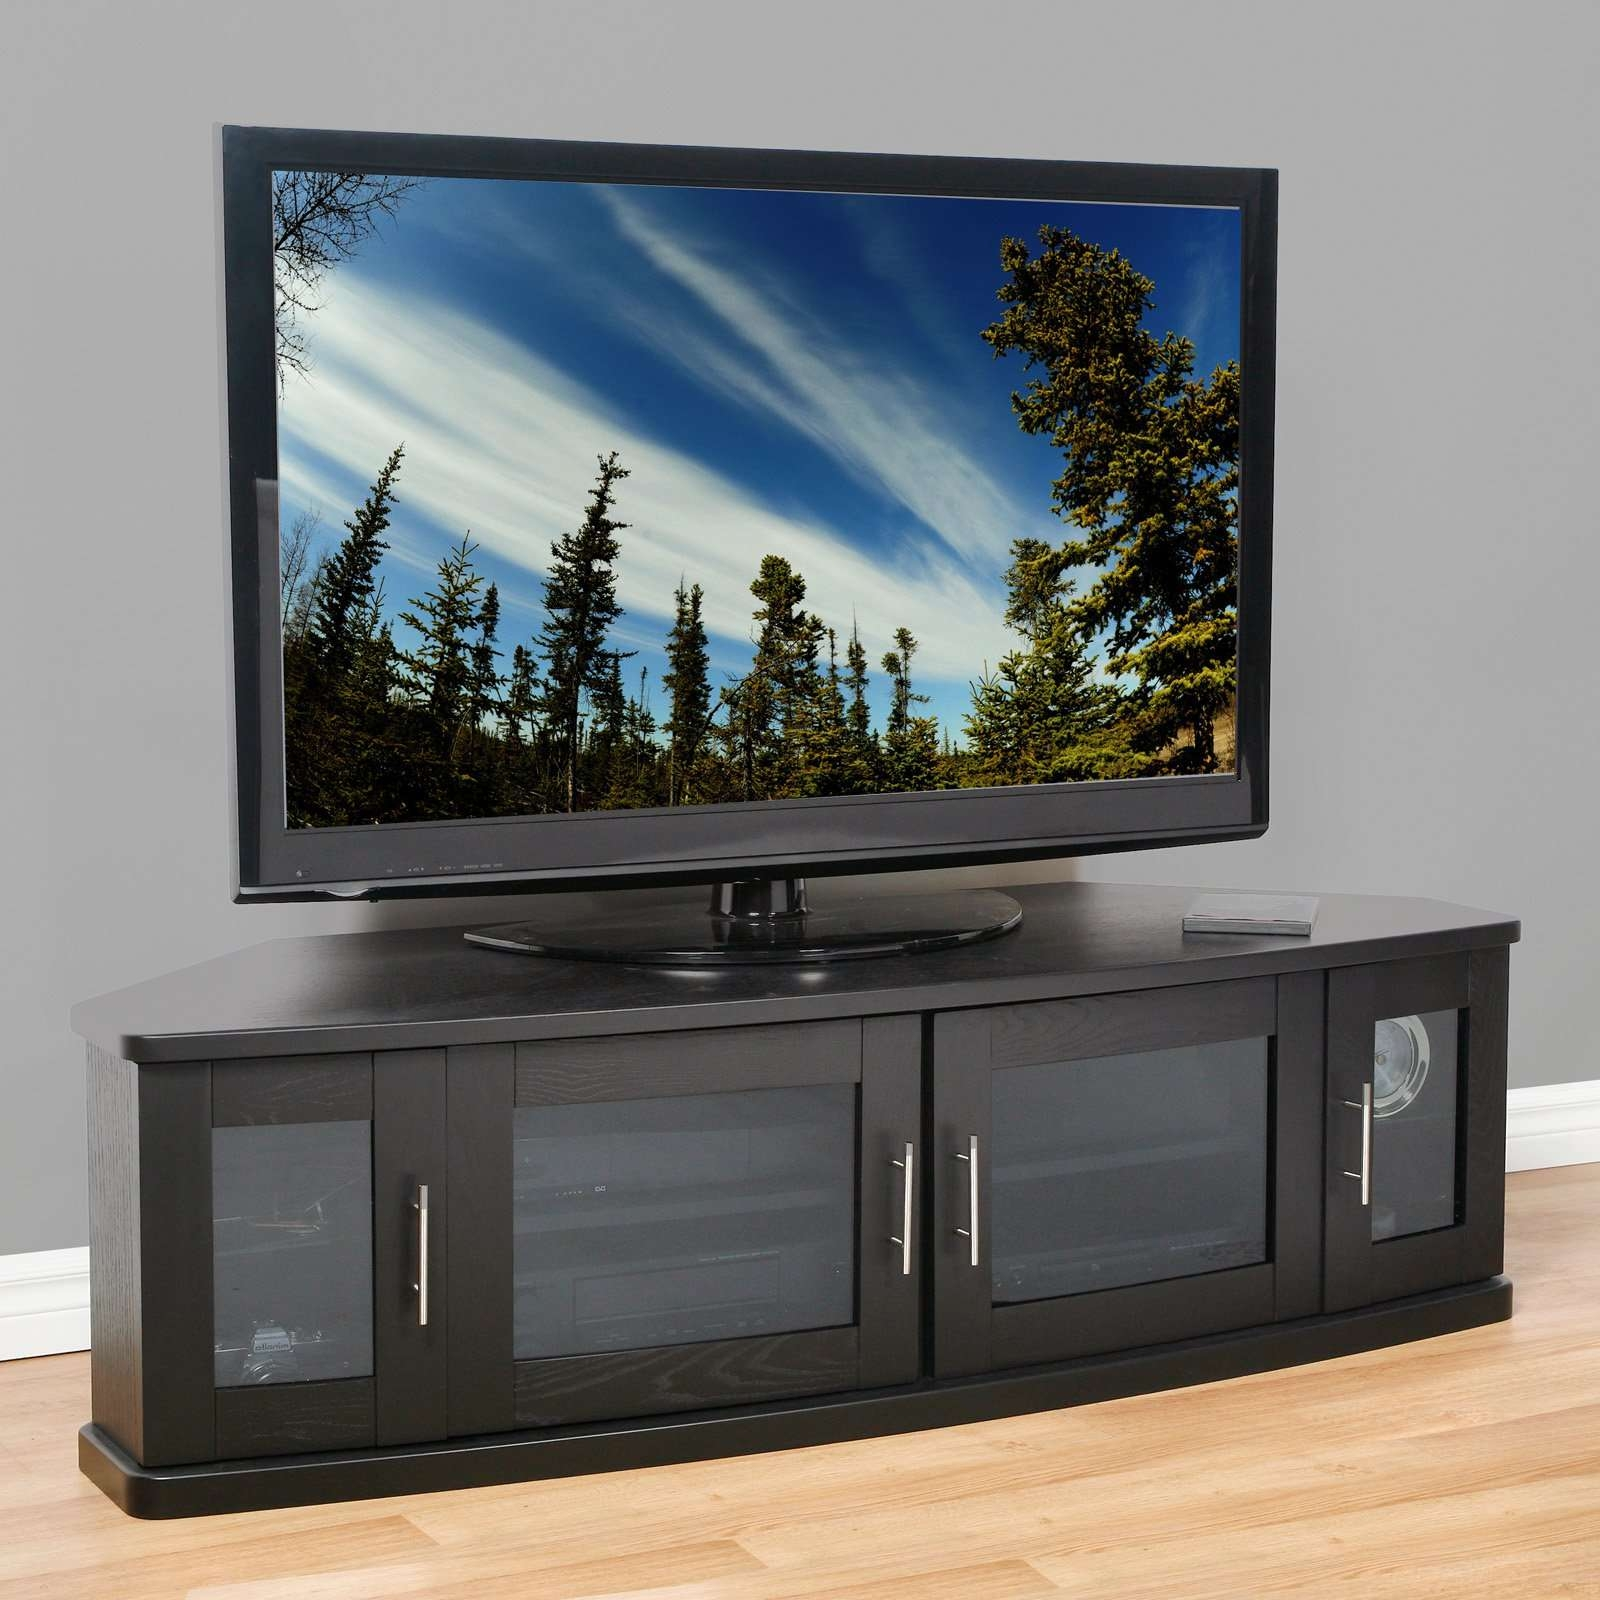 Modern Black Wooden Tv Stand With Frosted Glass Doors Of Dazzling Intended For Wooden Tv Cabinets With Glass Doors (View 12 of 20)